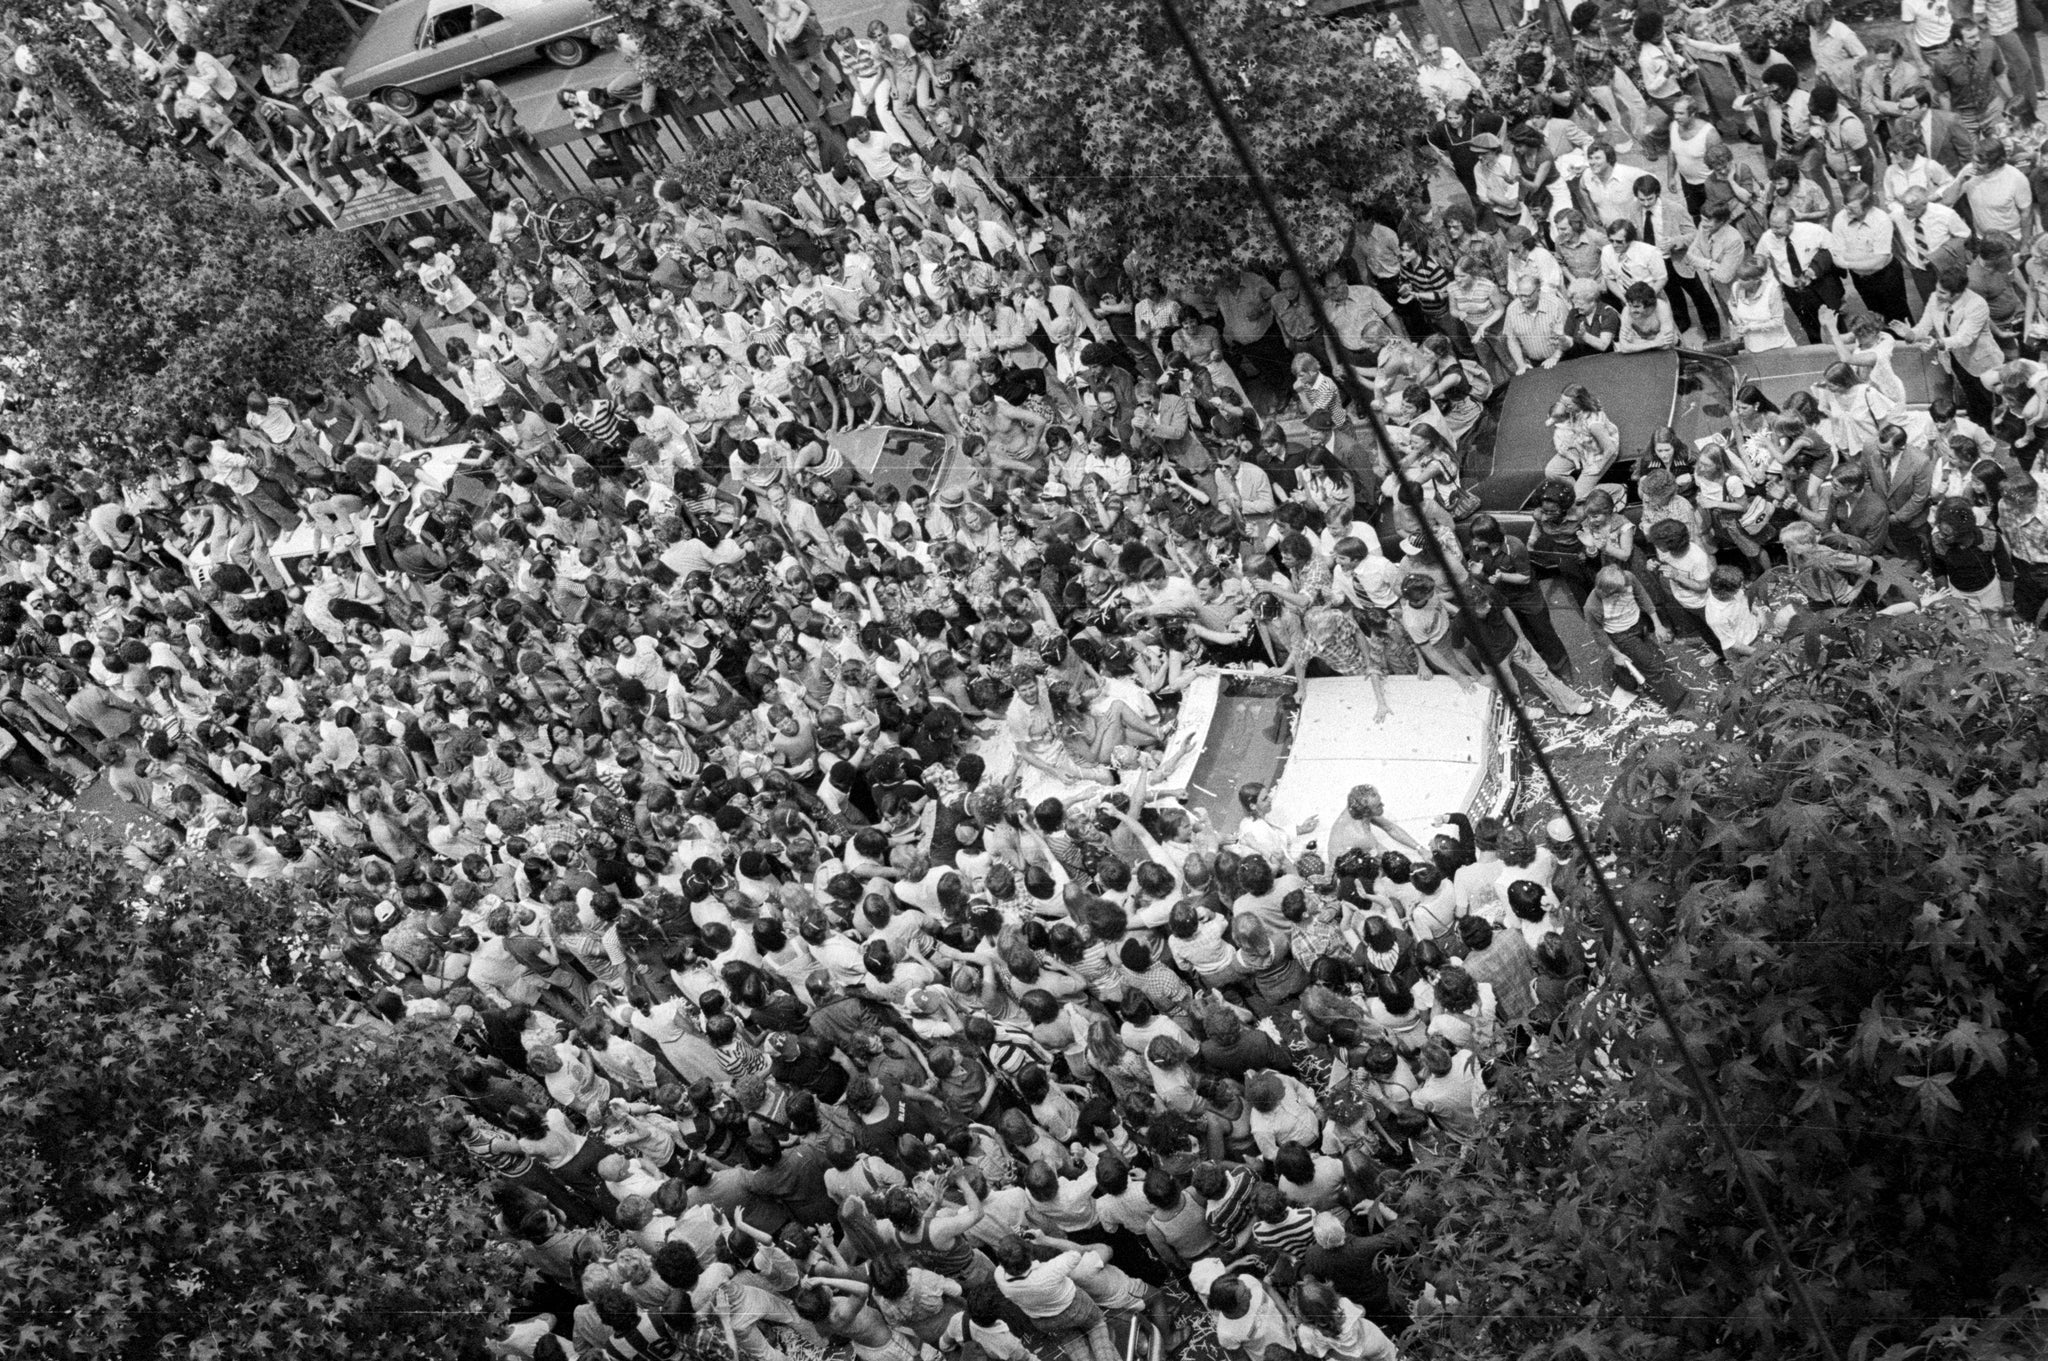 Blazers fans surround the convertible Bill Walton is riding in during the Blazers' 1977 victory parade. Walton initially tried to ride his bike, but the sea of fans made it impossible. -- ROGER JENSEN / THE OREGONIAN/OREGONLIVE